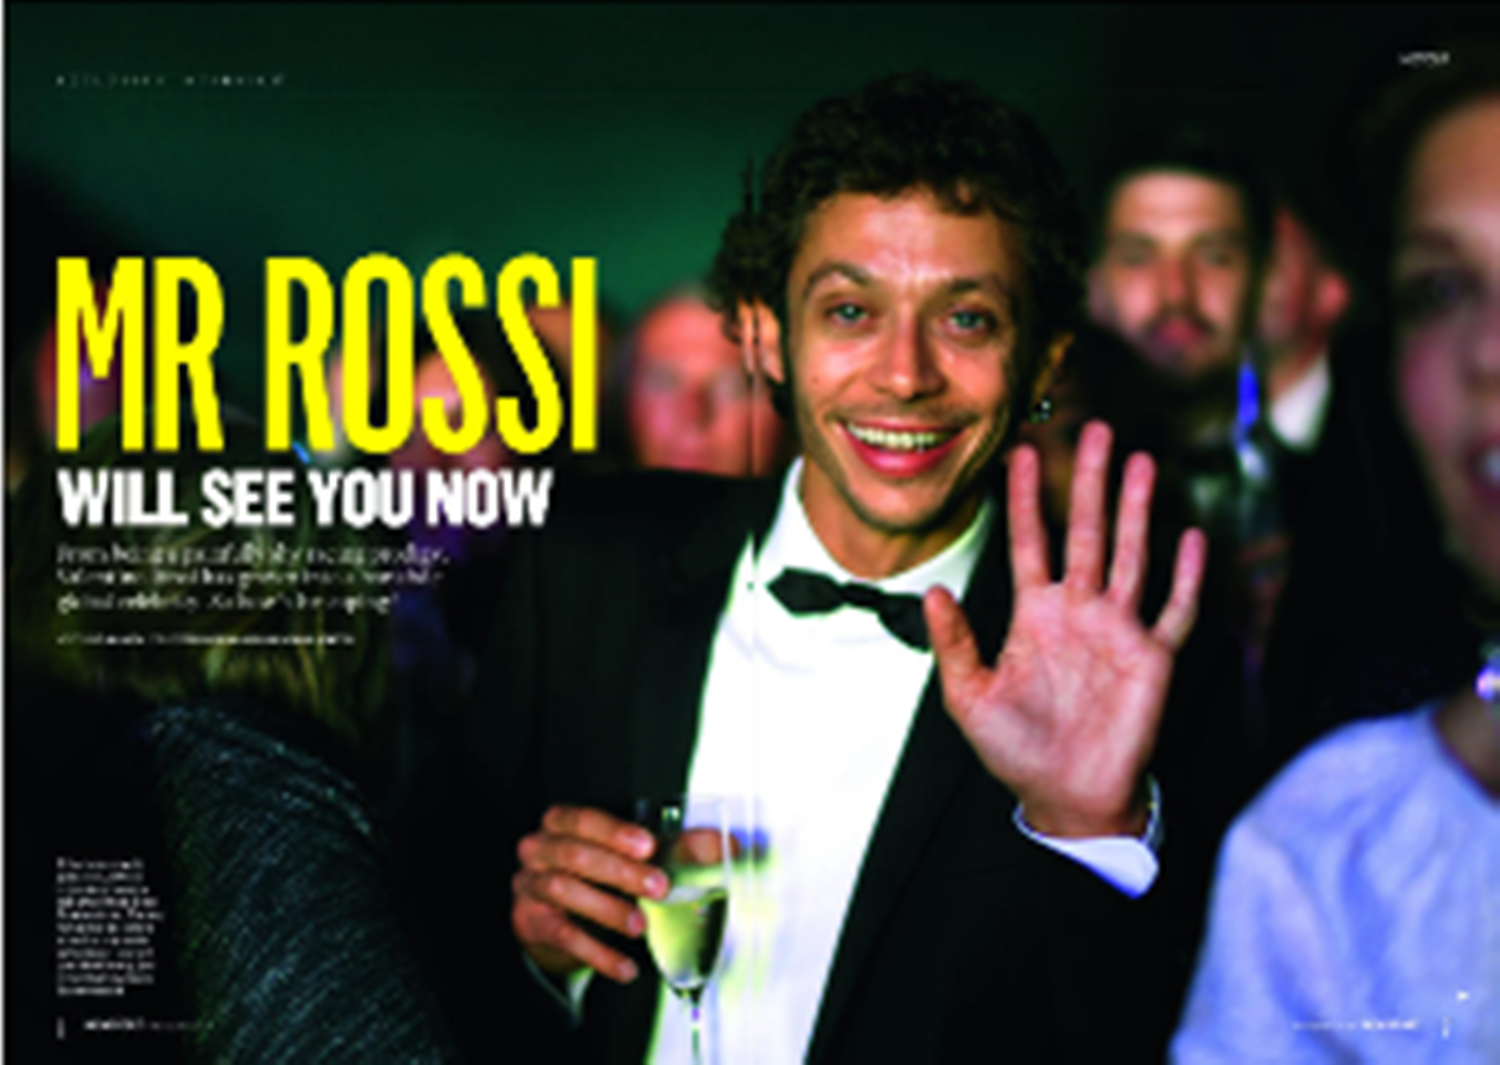 Mr Rossi will see you now